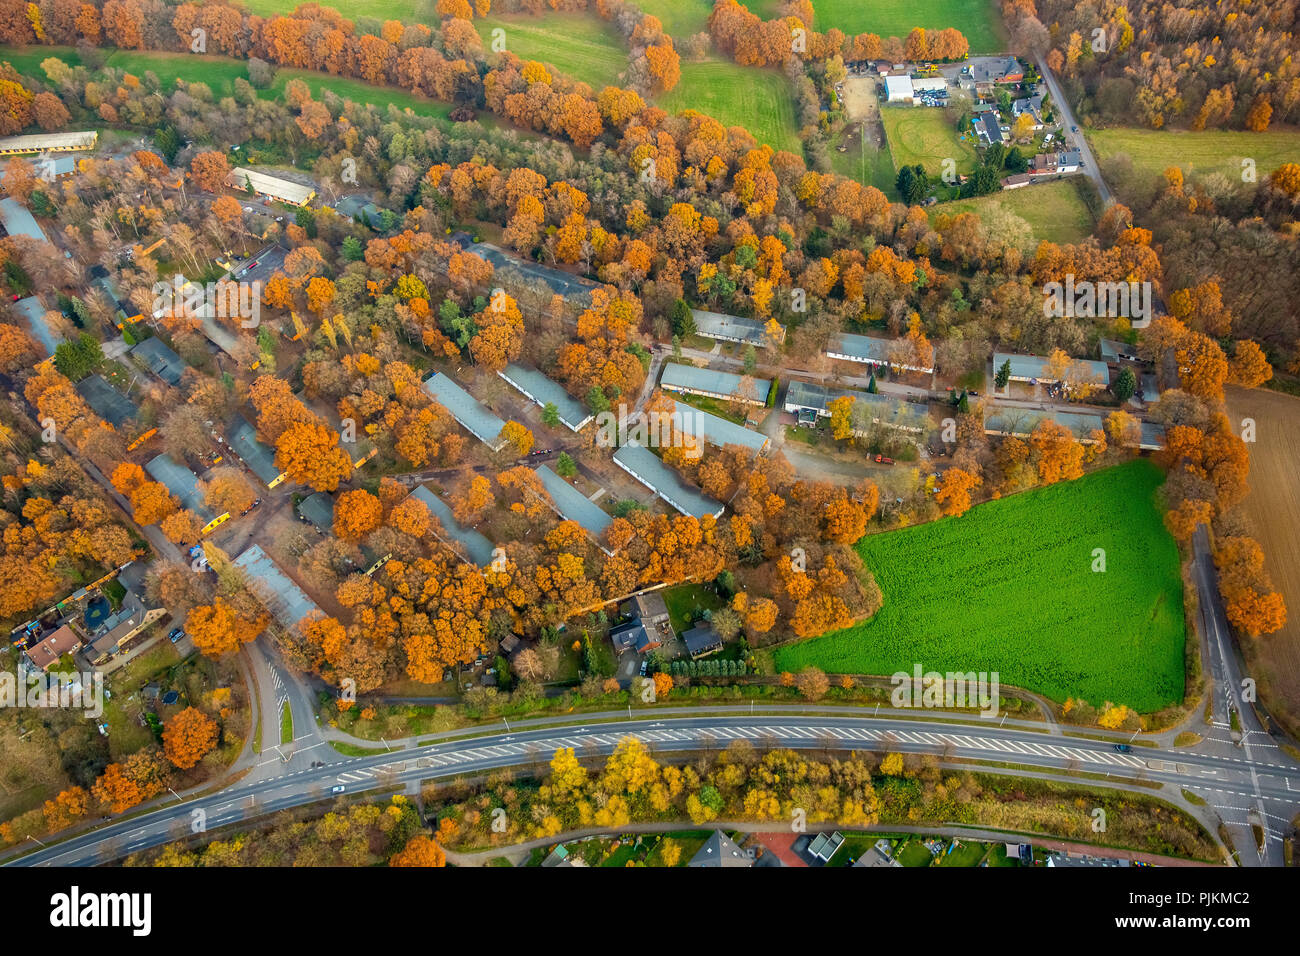 Refugee shelter of the Caritas society Dinslaken, unemployed project, An der Fliehburg, Dinslaken, Ruhr area, North Rhine-Westphalia, Germany - Stock Image